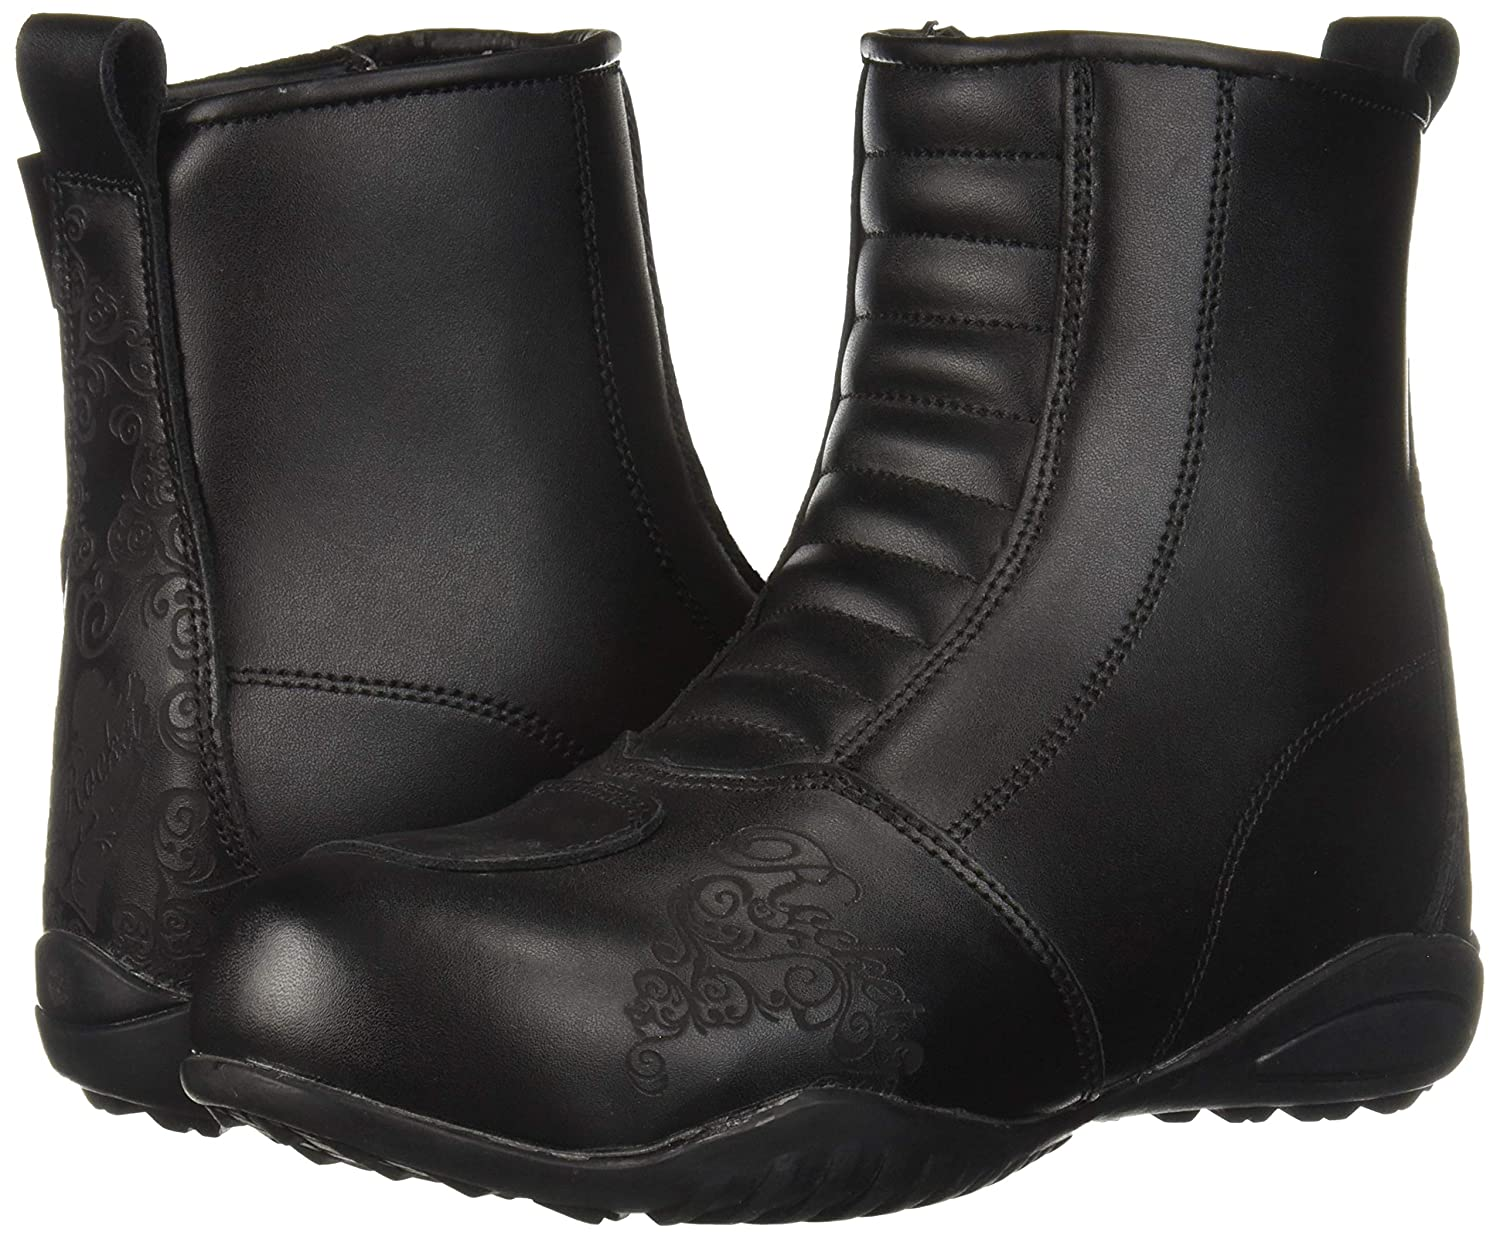 Joe Rocket Womens Trixie Boots Black, Size 6